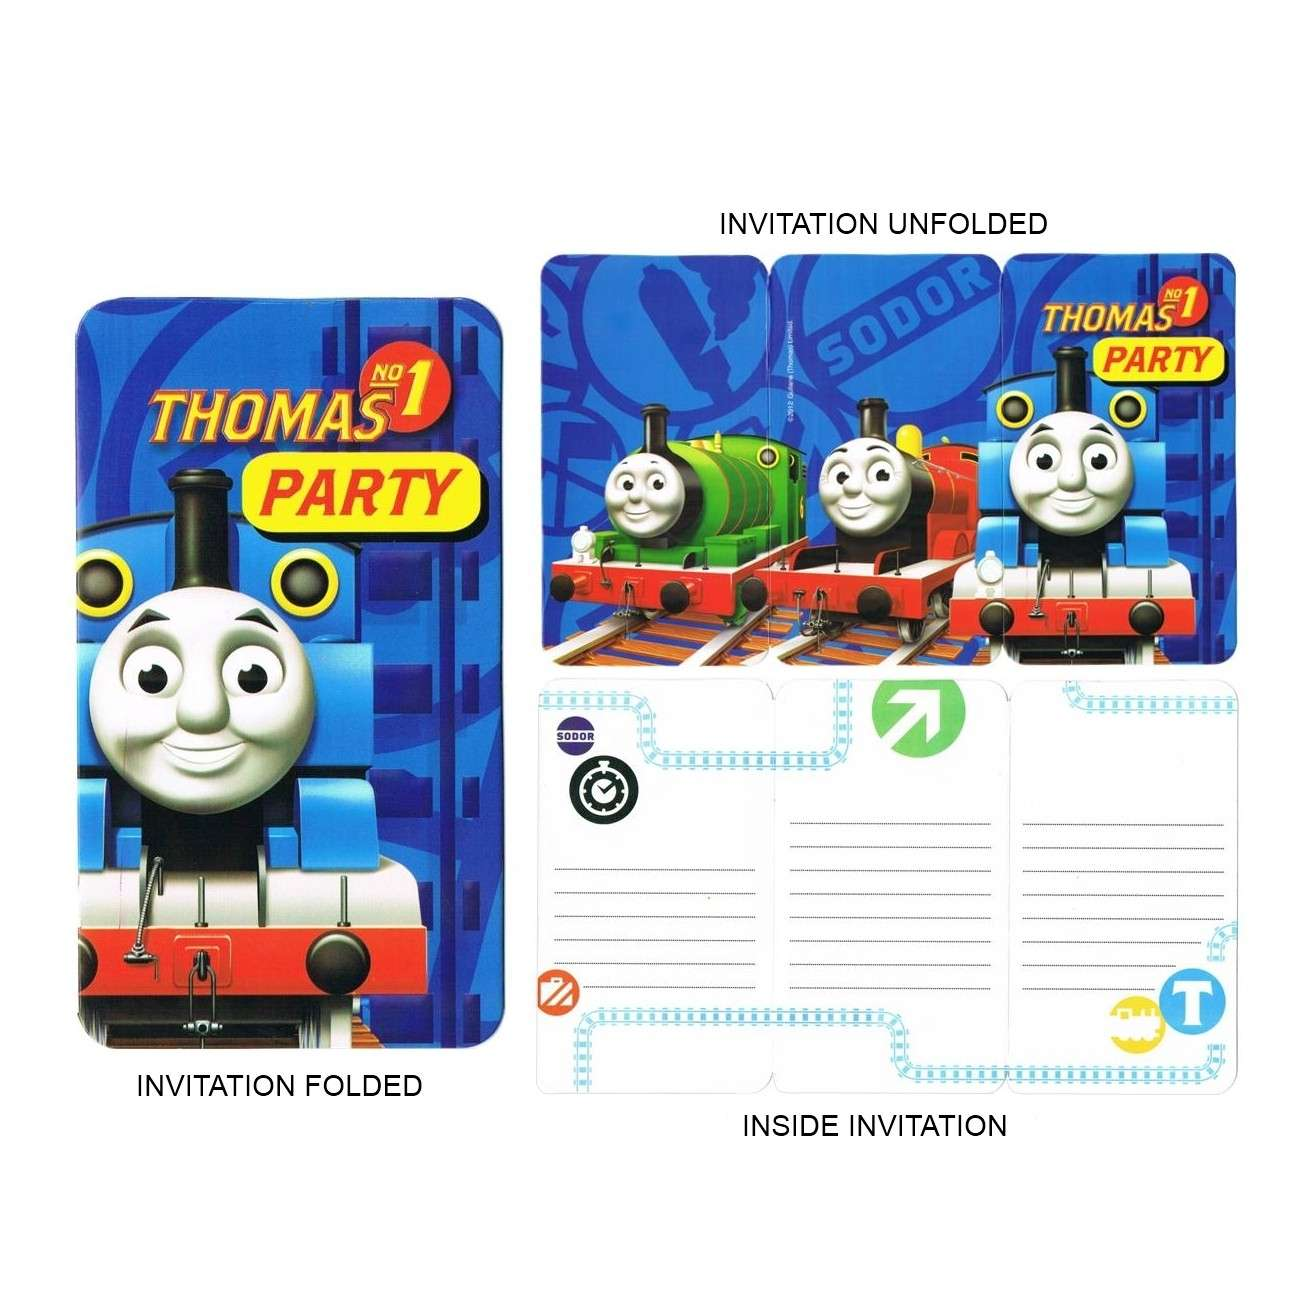 Thomas and Friends Party Invitations (8) - Thomas the Tank Engine ...